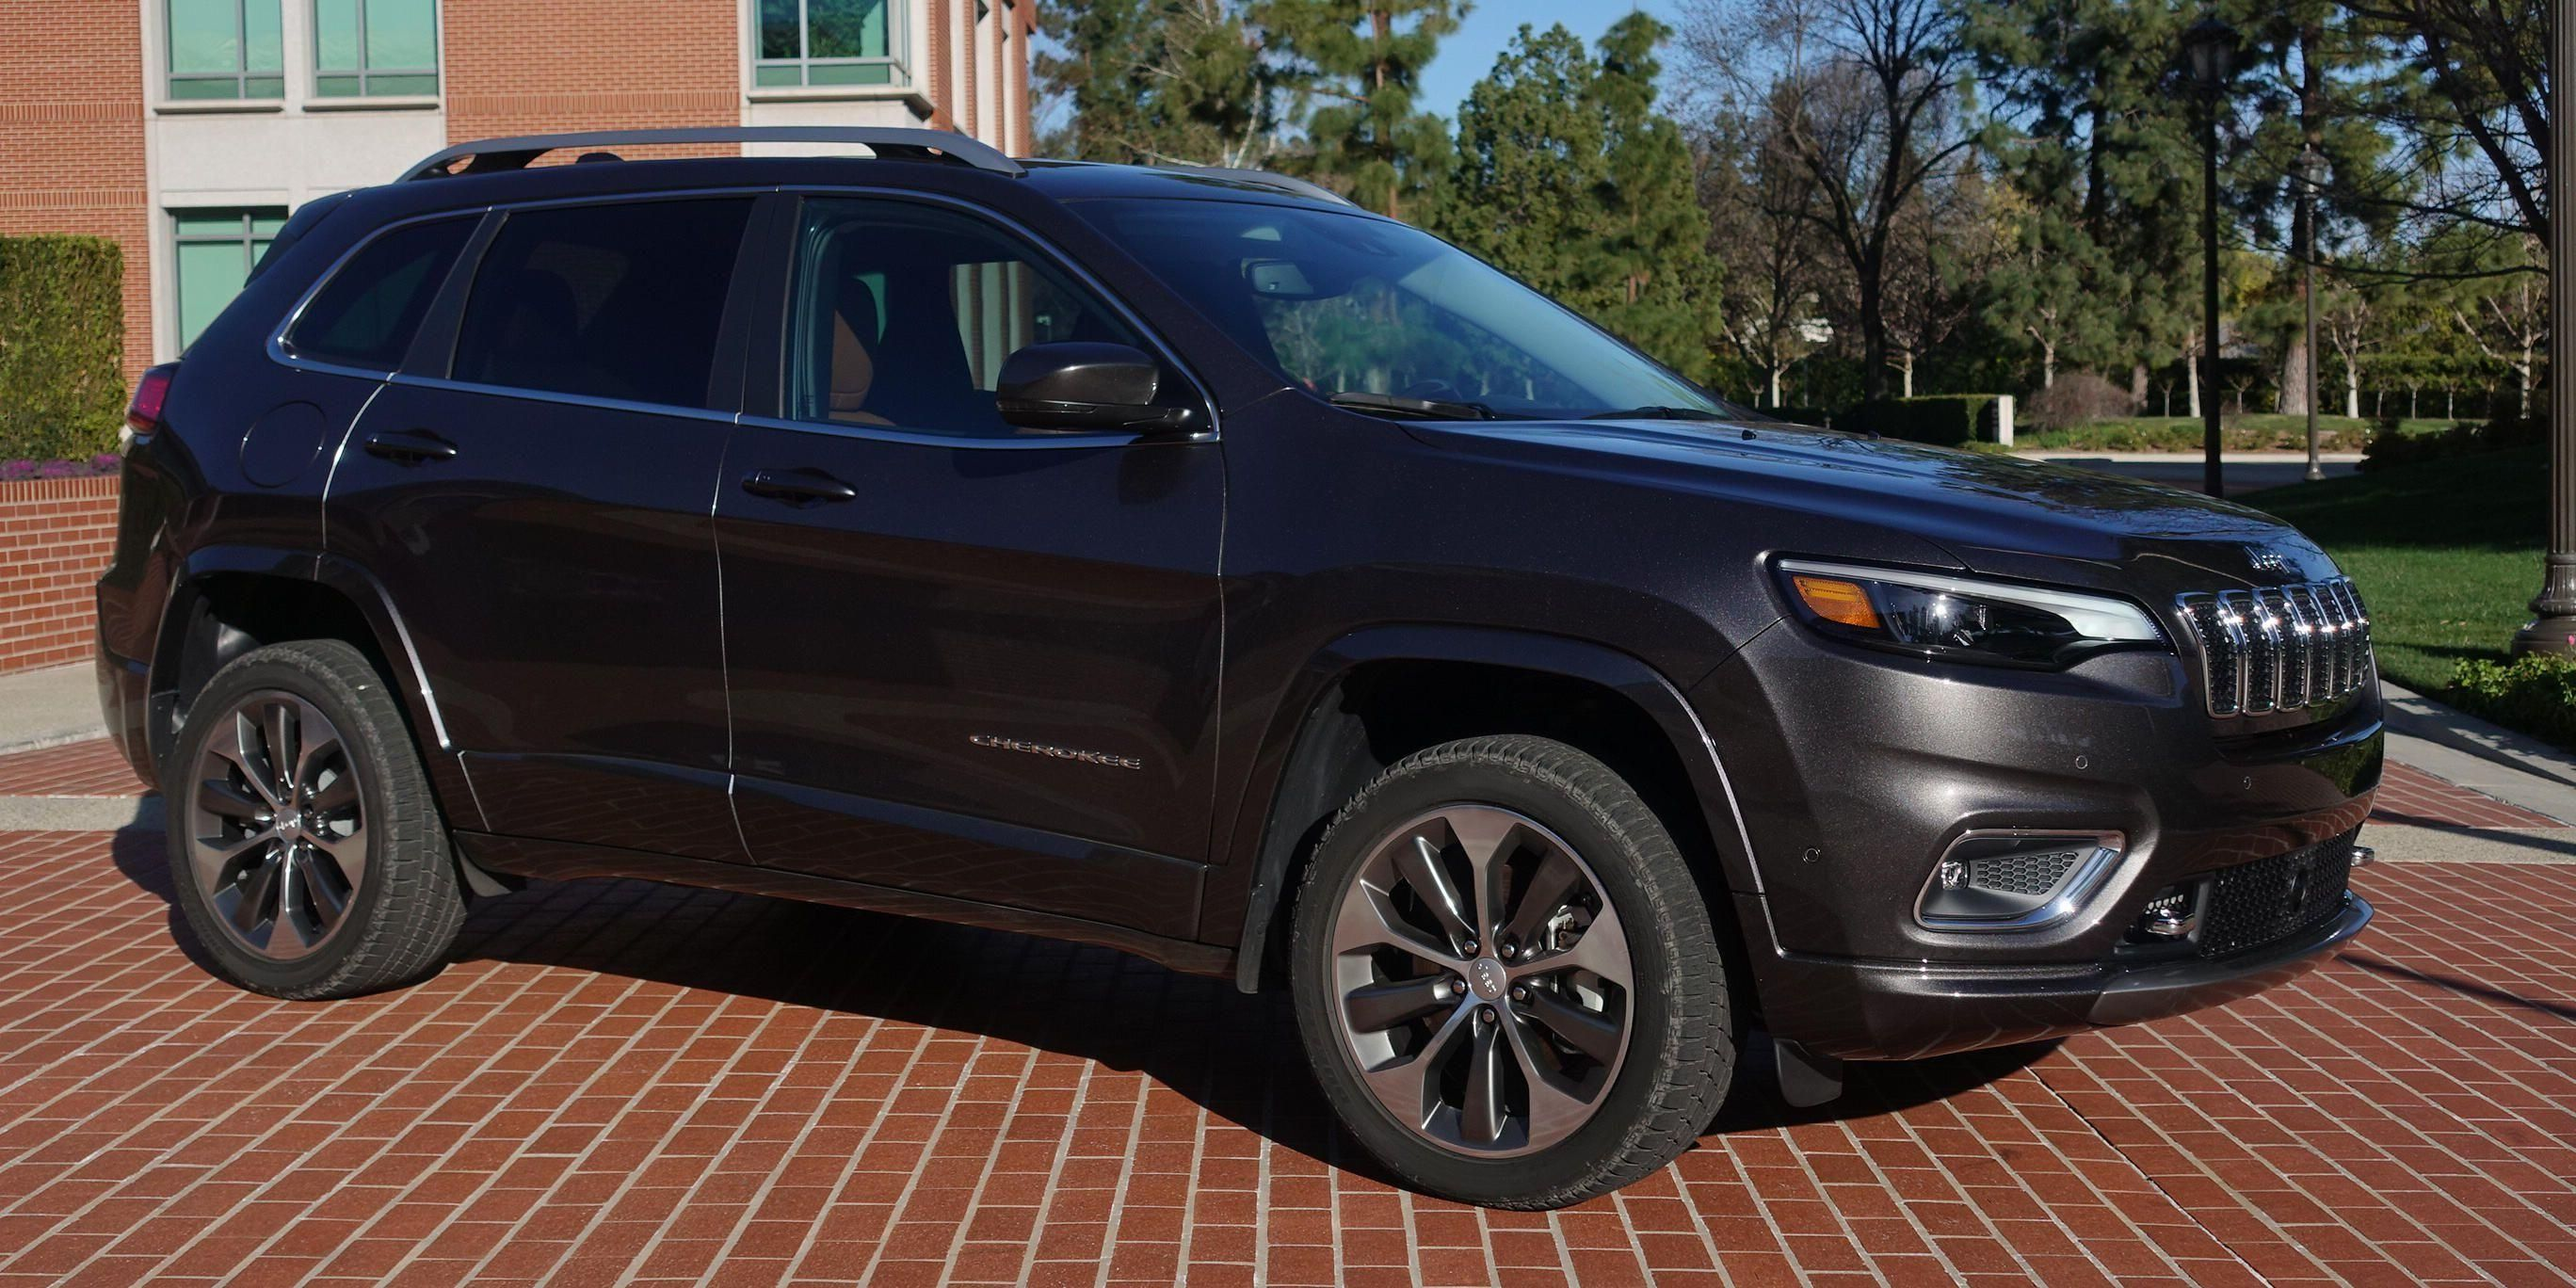 2019 Jeep Cherokee Trailhawk Crossover Suv Review Roadshow Pertaining To Jeep Compass 2019 Jeep Trailhawk Jeep